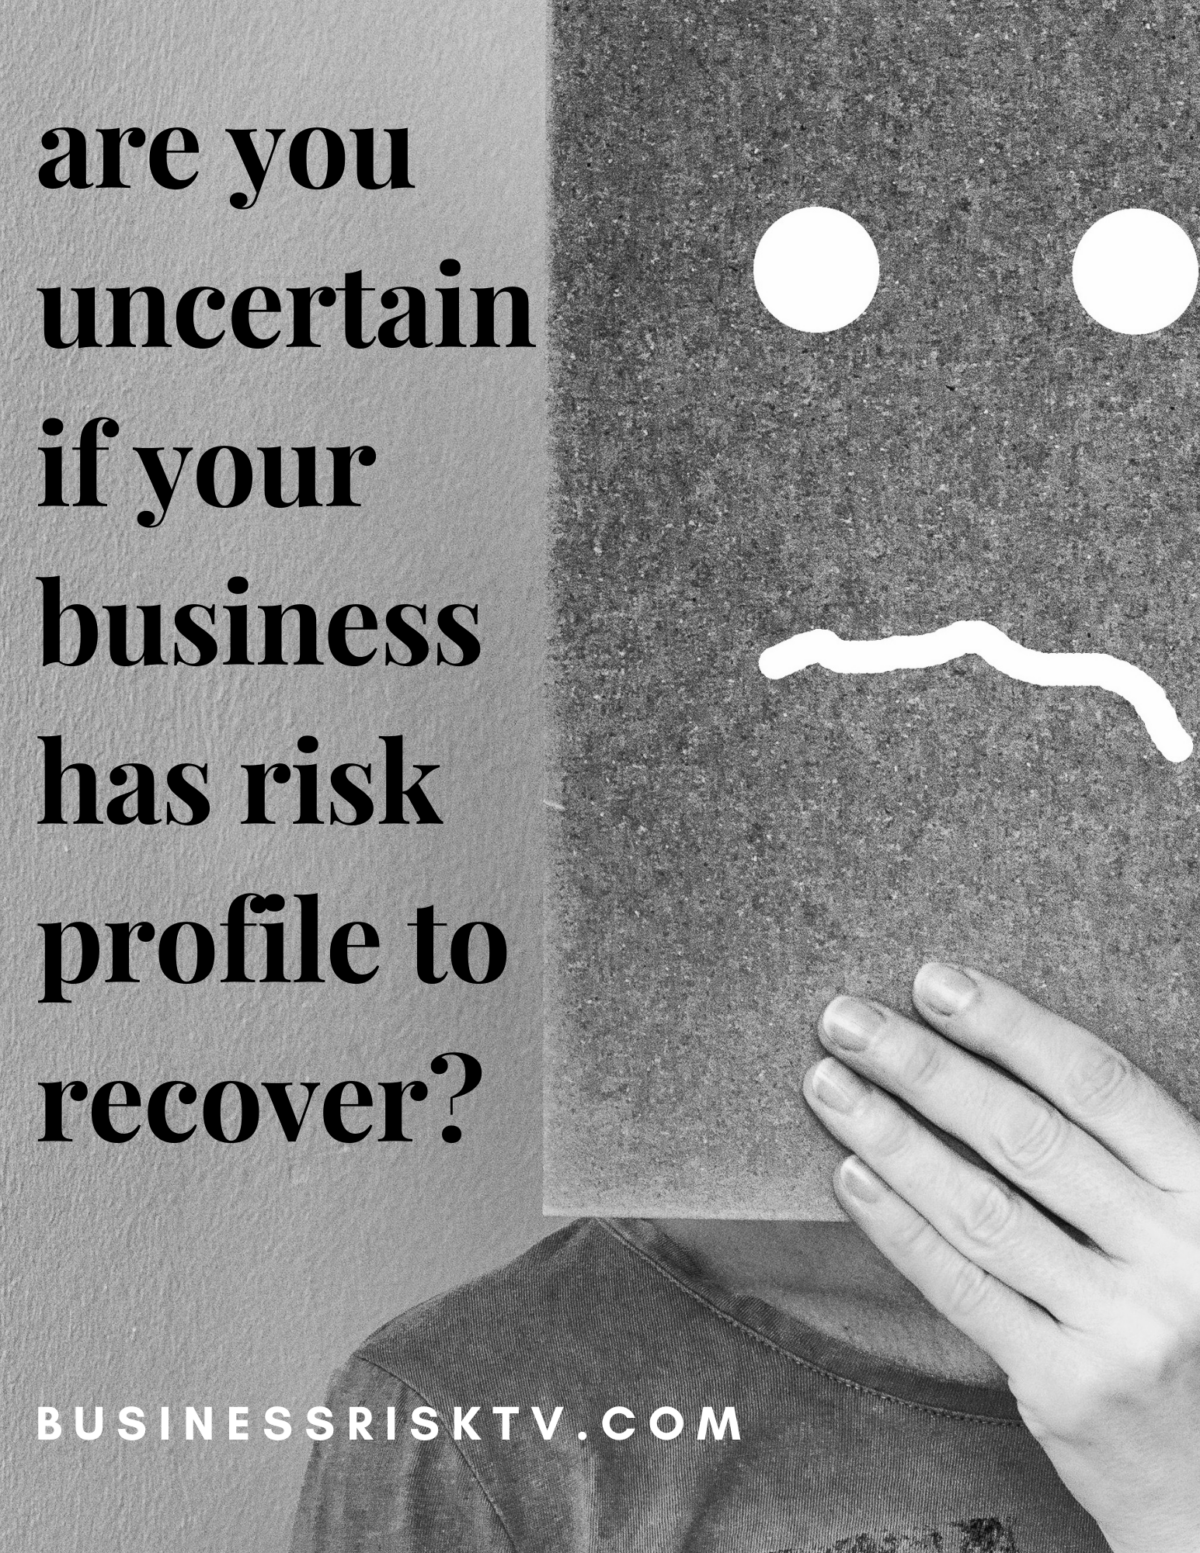 How to manage risk in business better with BusinessRiskTV